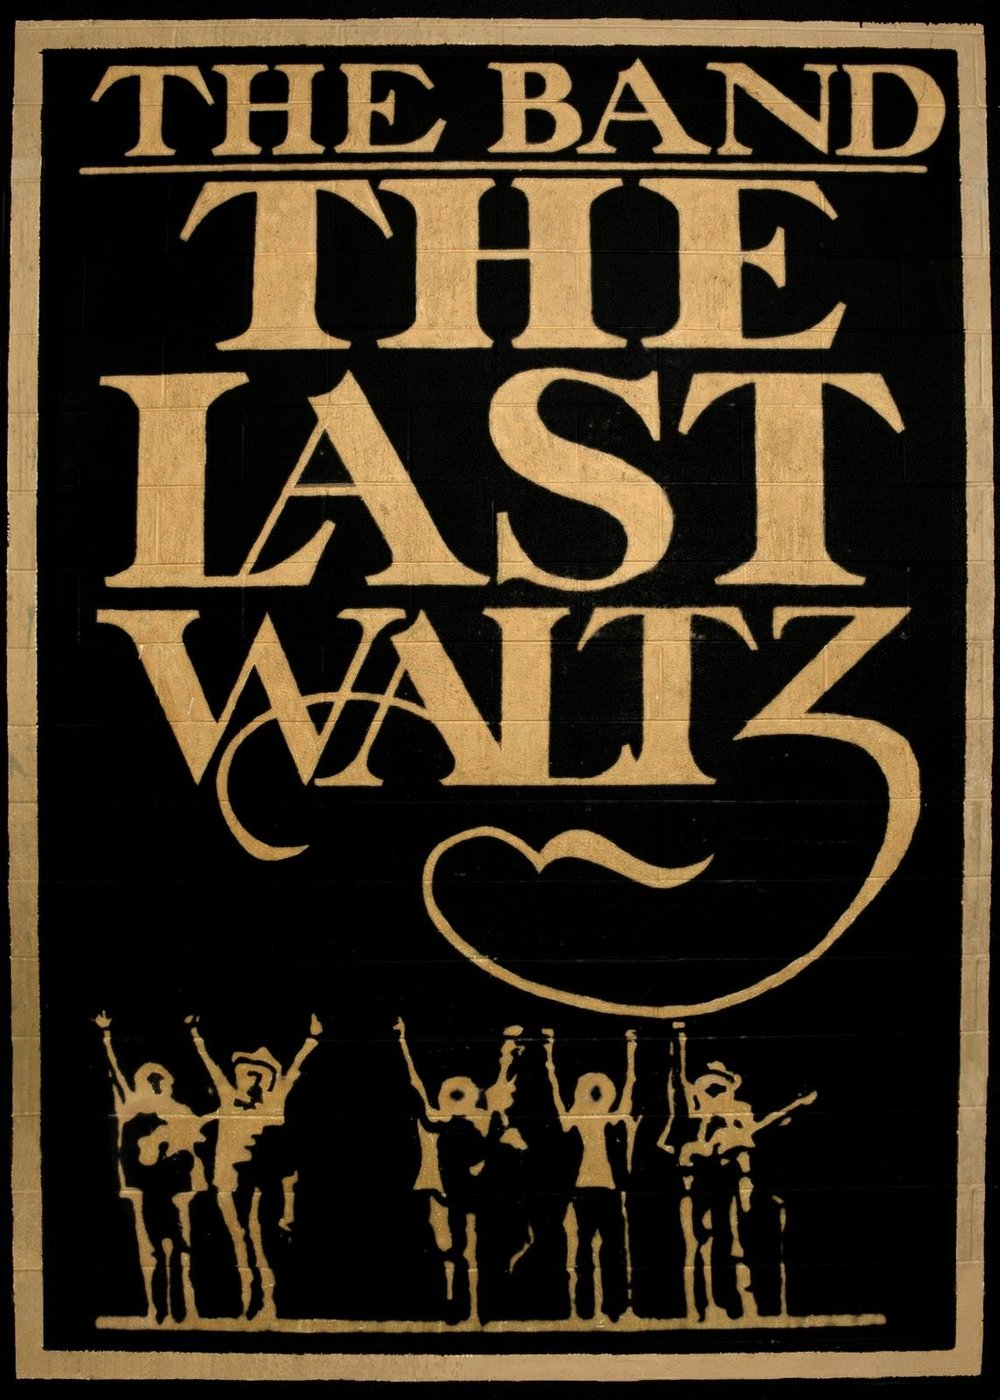 The Last Waltz Poster.jpg